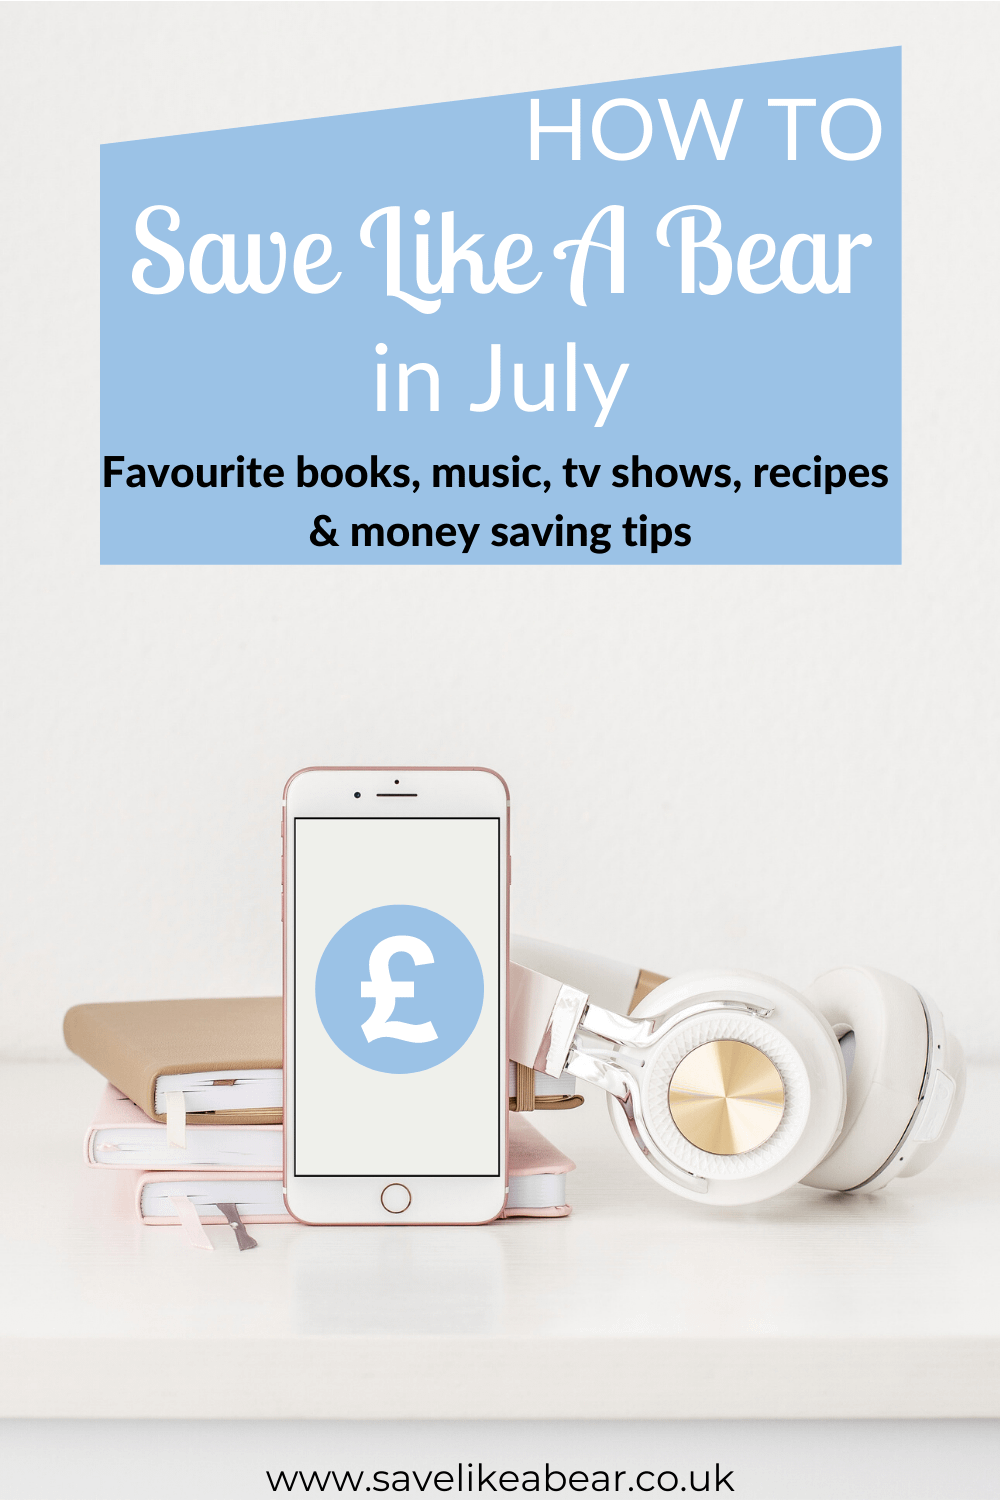 Rose gold iphone and headphones and 3 notebooks on white surface. Title says how to save like a bear in July: favourite books, music, Tv shows, recipes & money saving tips